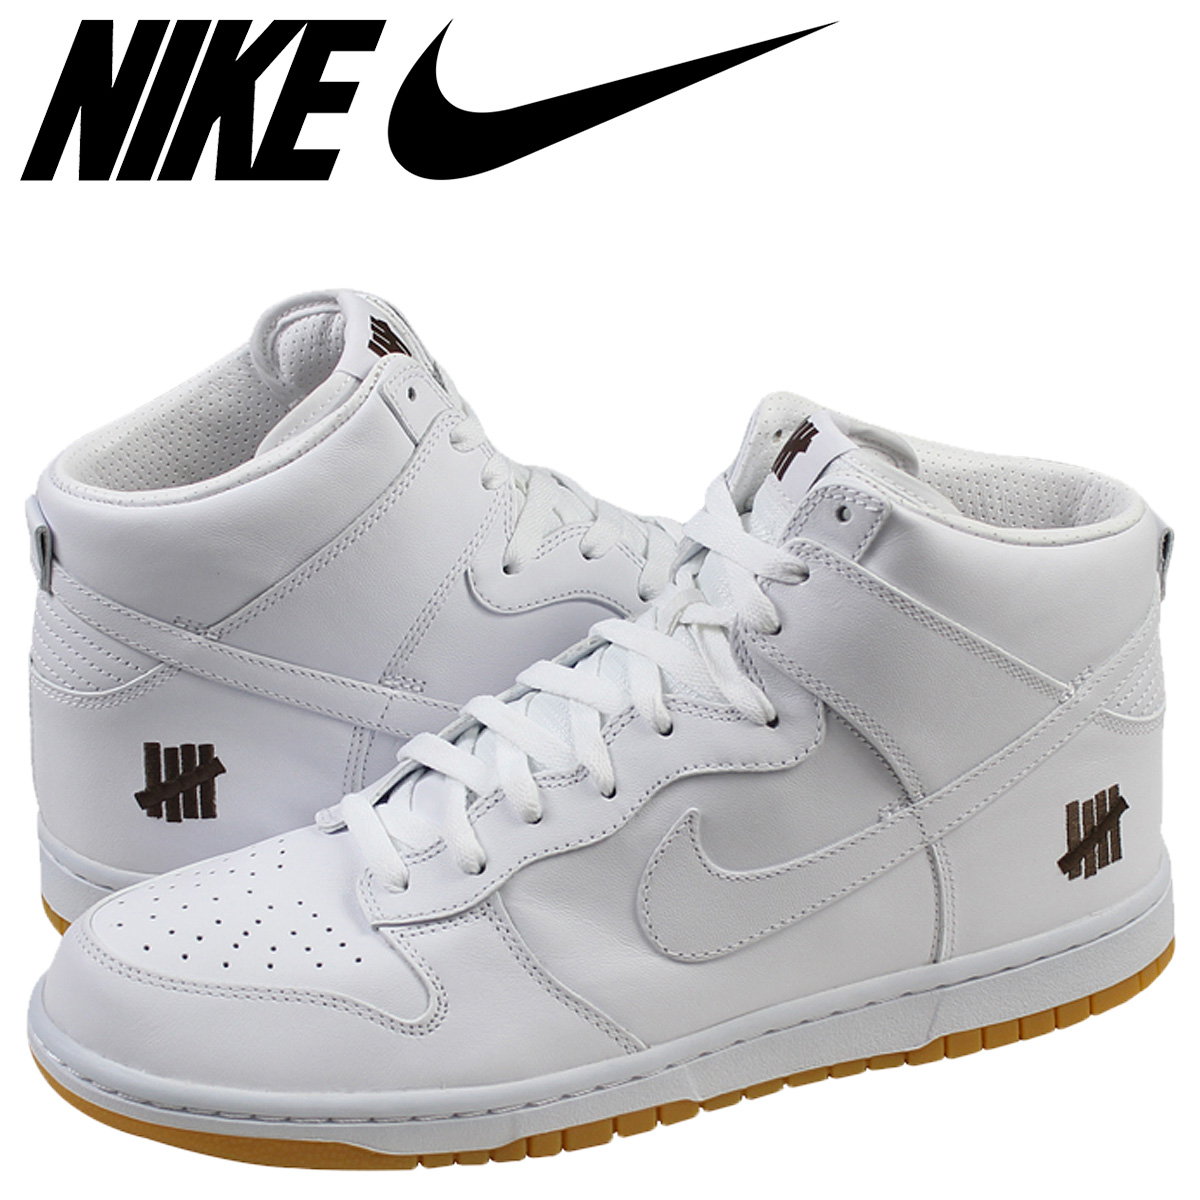 598472-110 Andy fated dunk Nike NIKE dunk sneakers DUNK PREMIUM HI UNDFTD SP